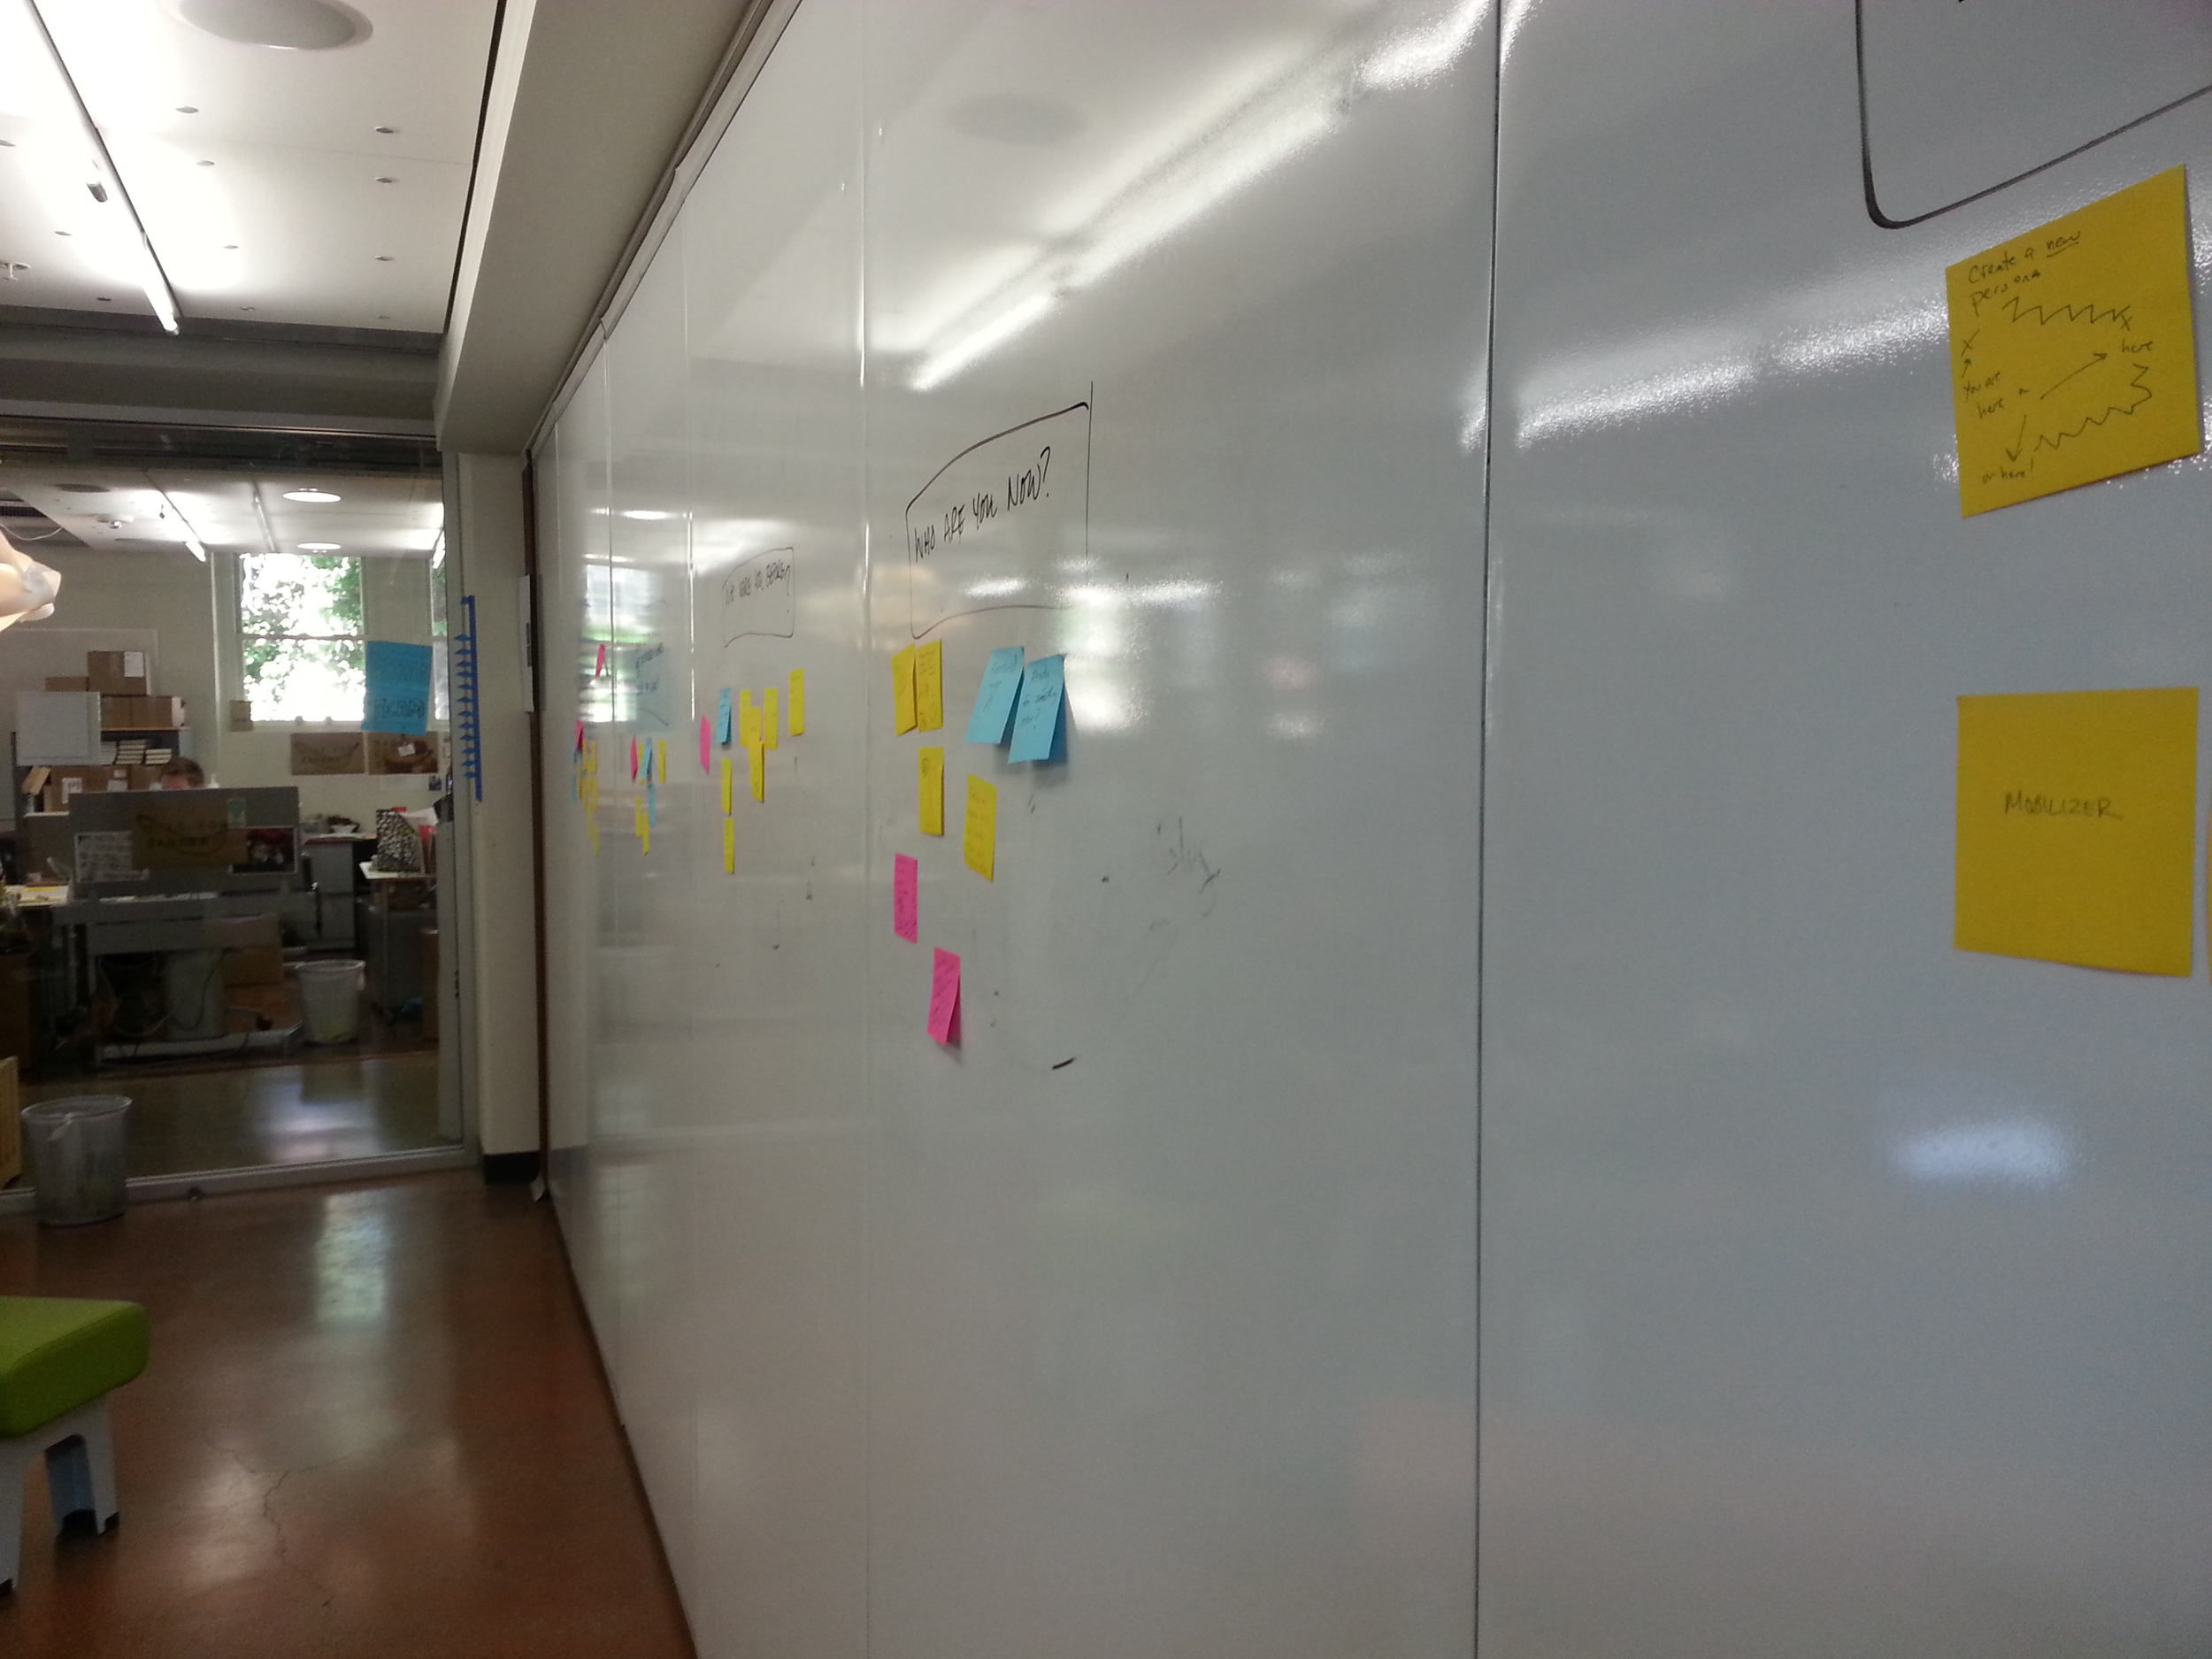 The whiteboards following the storytelling studio post-it exercise on April 2. (Emi Kolawole)